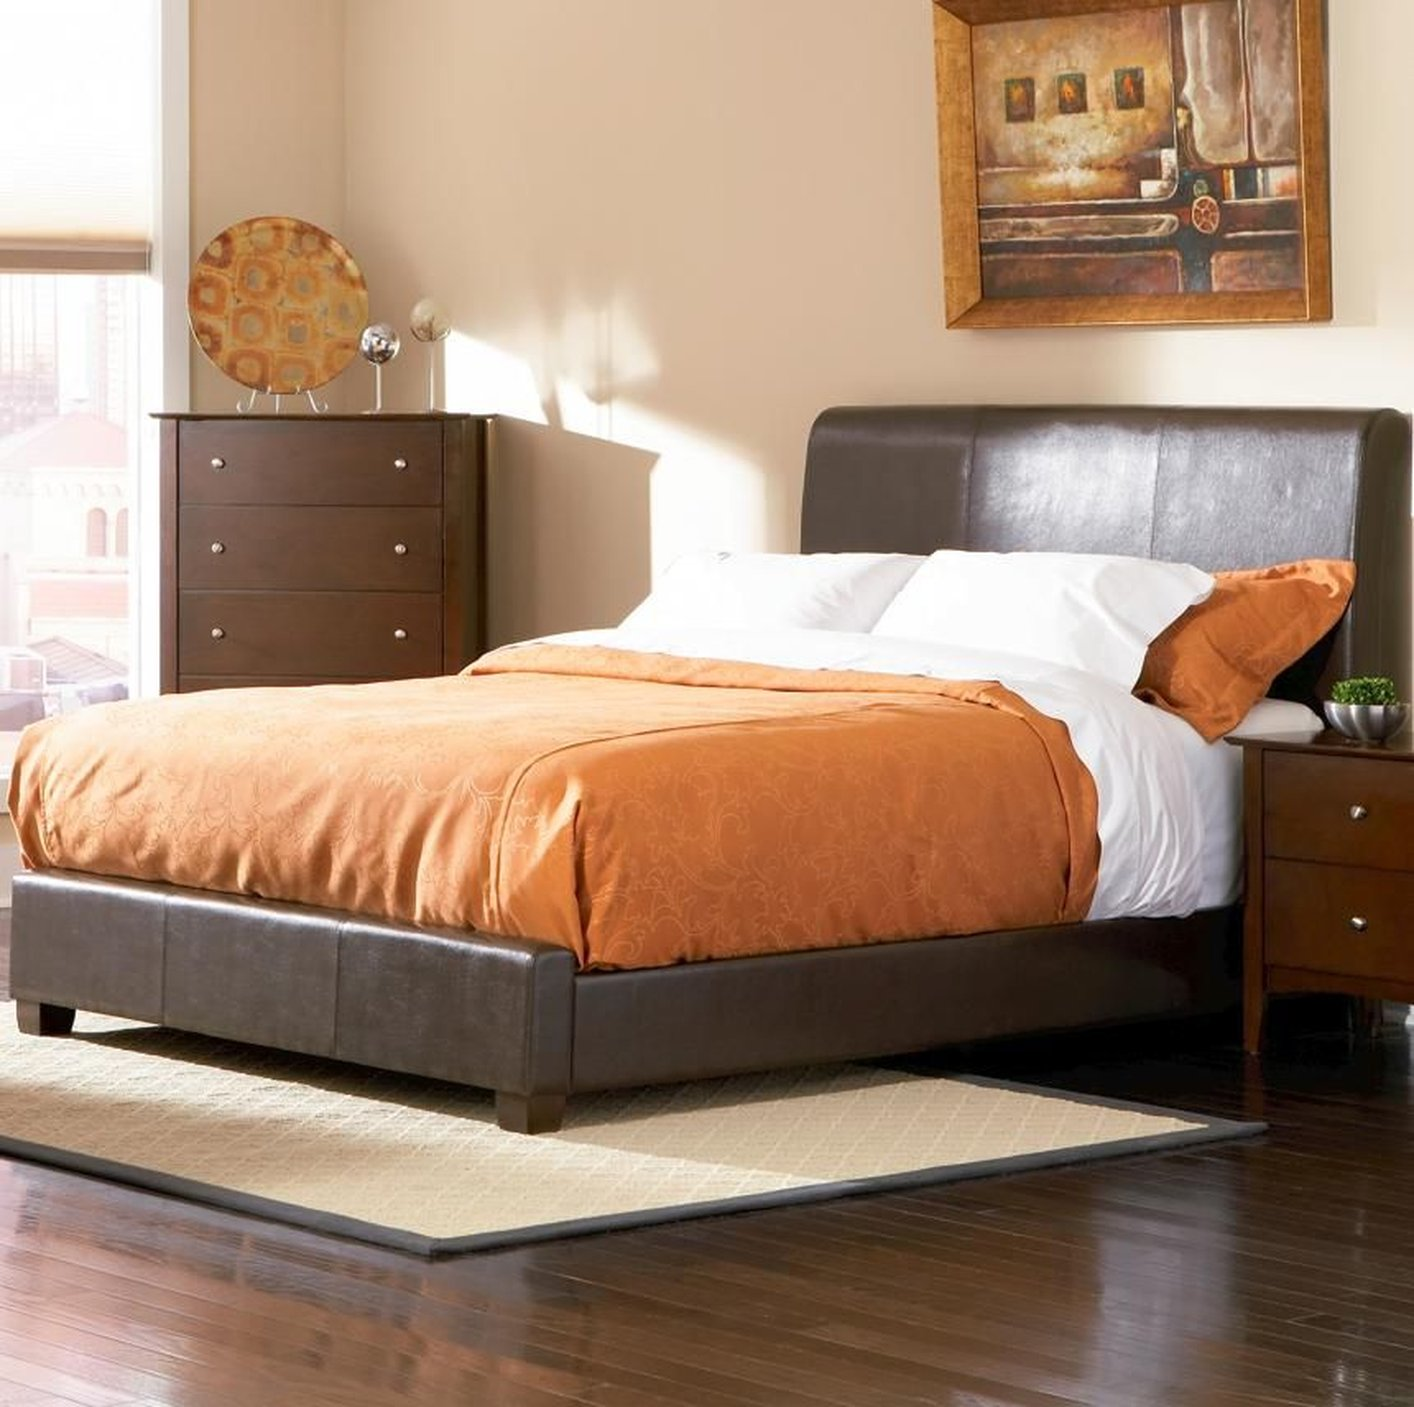 Coaster Kw Brown California King Size Leather Bed